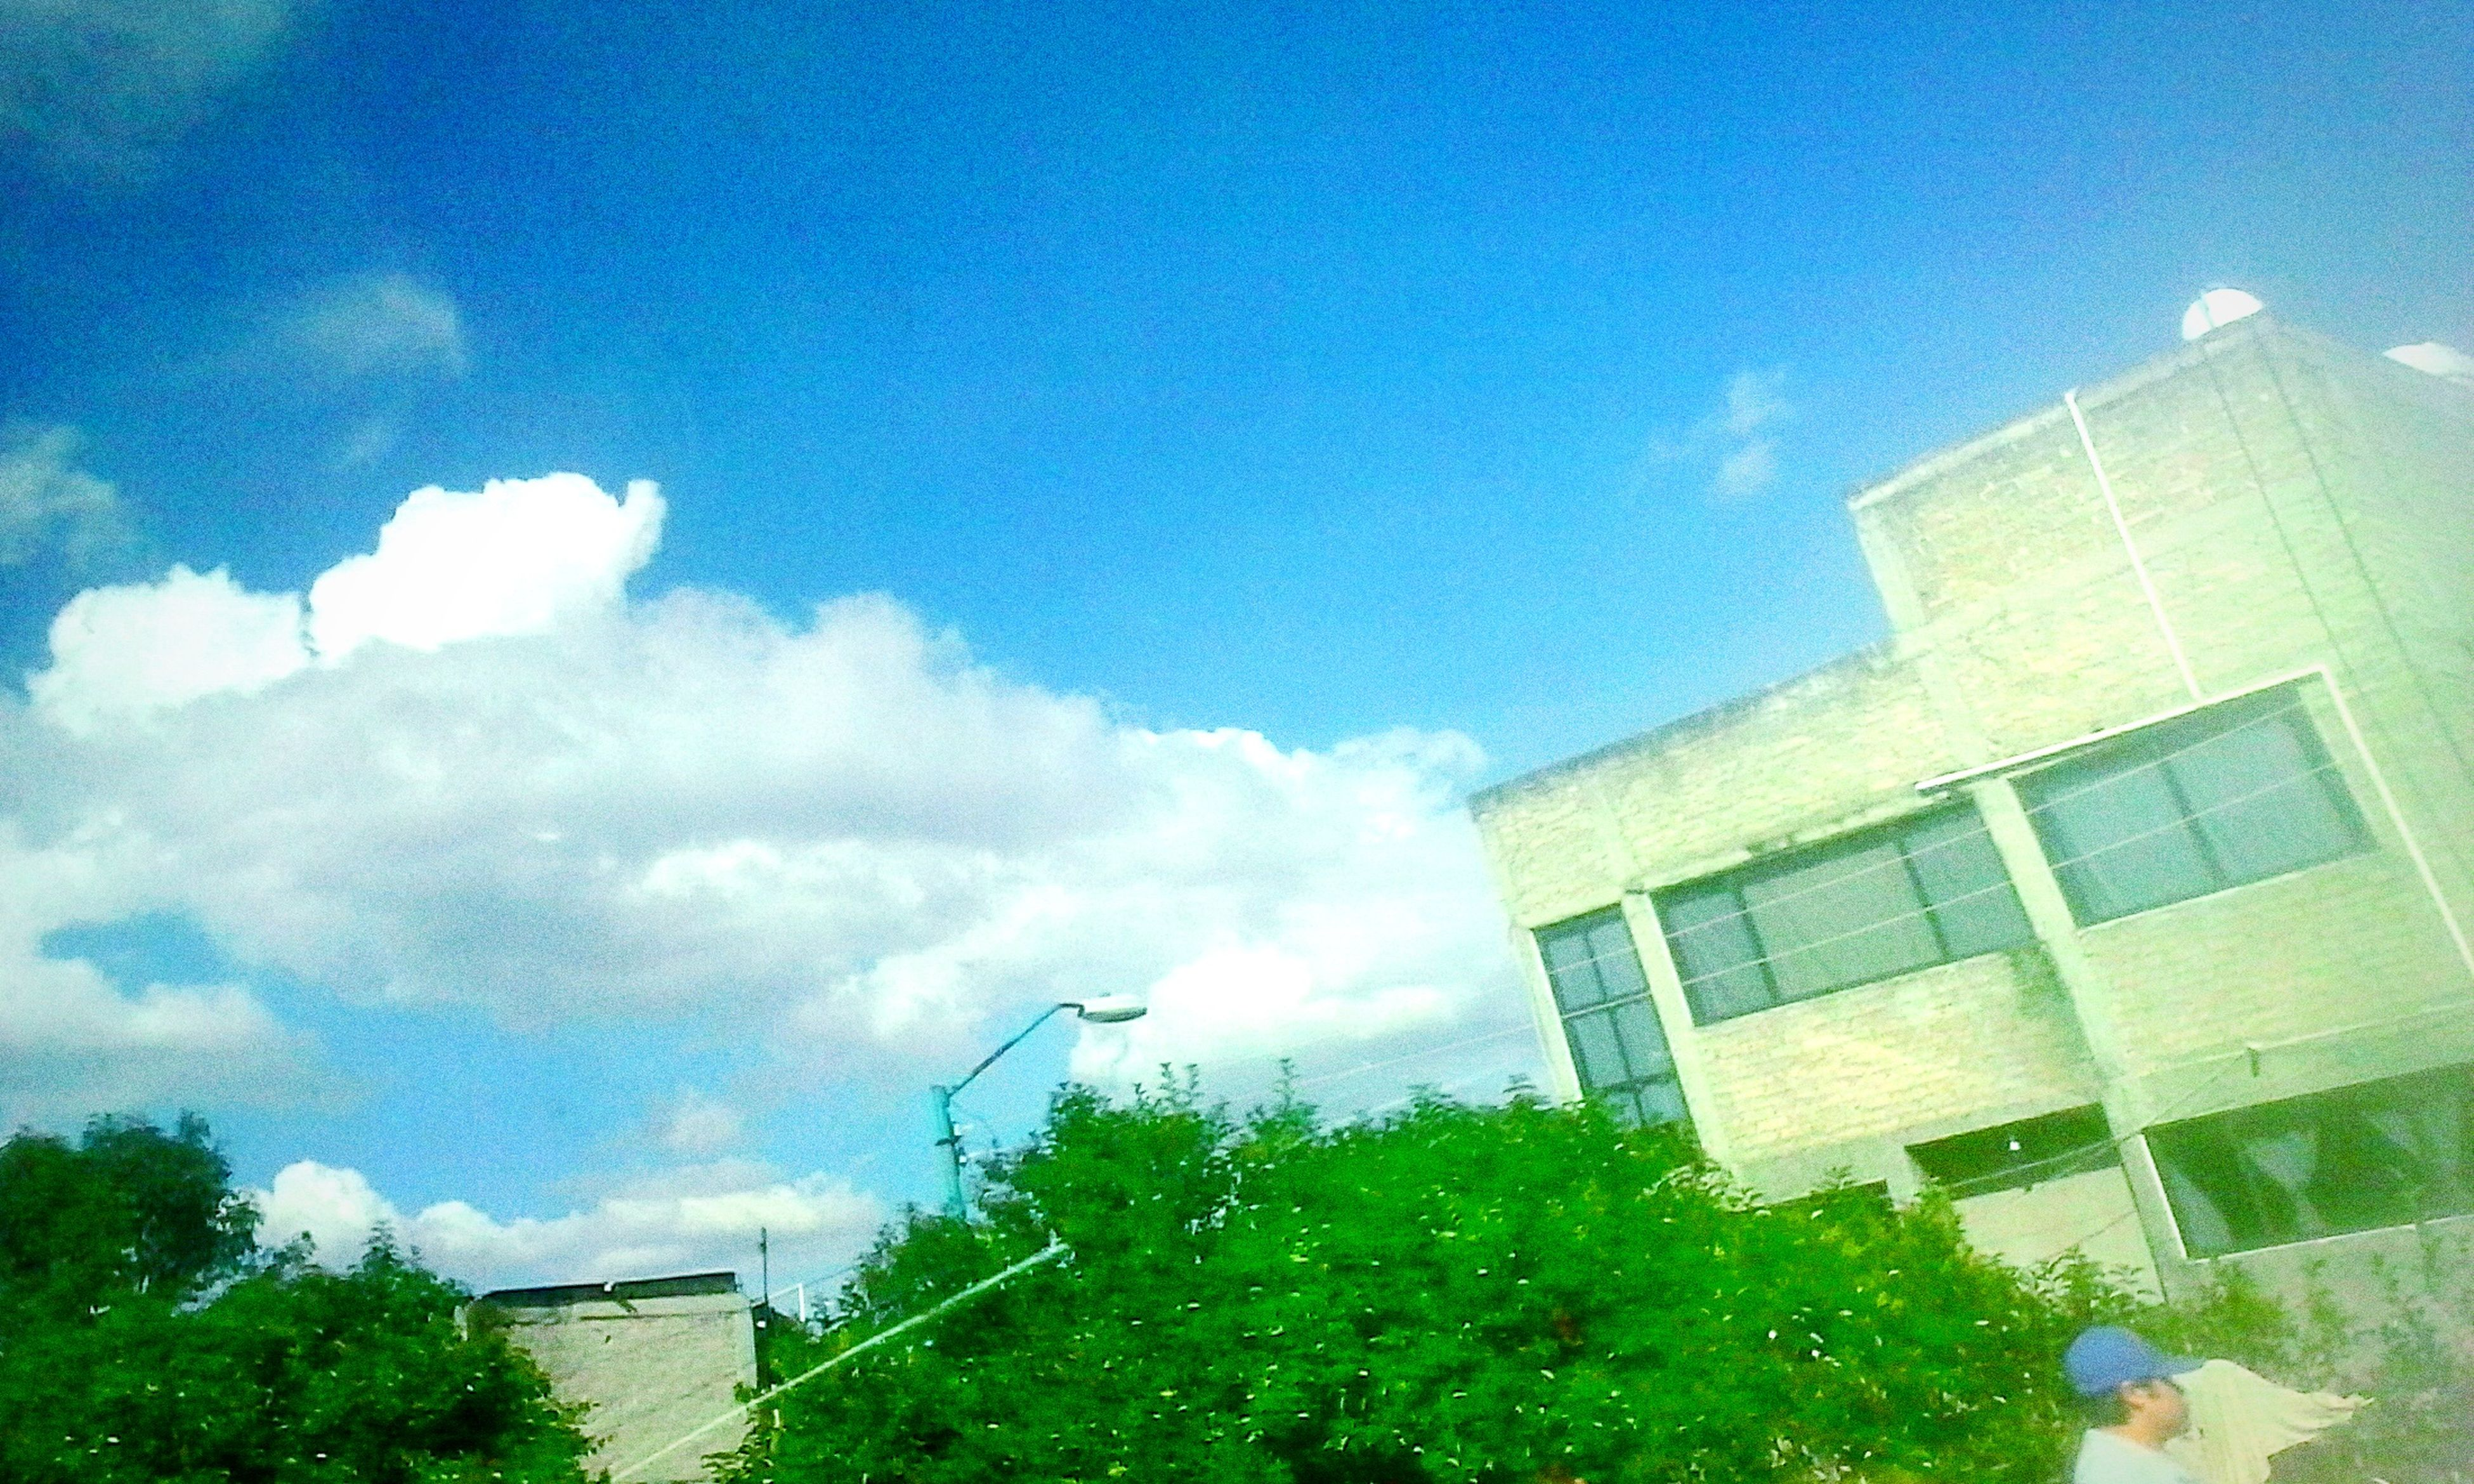 building exterior, architecture, built structure, low angle view, sky, cloud - sky, tree, blue, building, cloud, day, cloudy, city, outdoors, growth, no people, sunlight, house, window, residential building